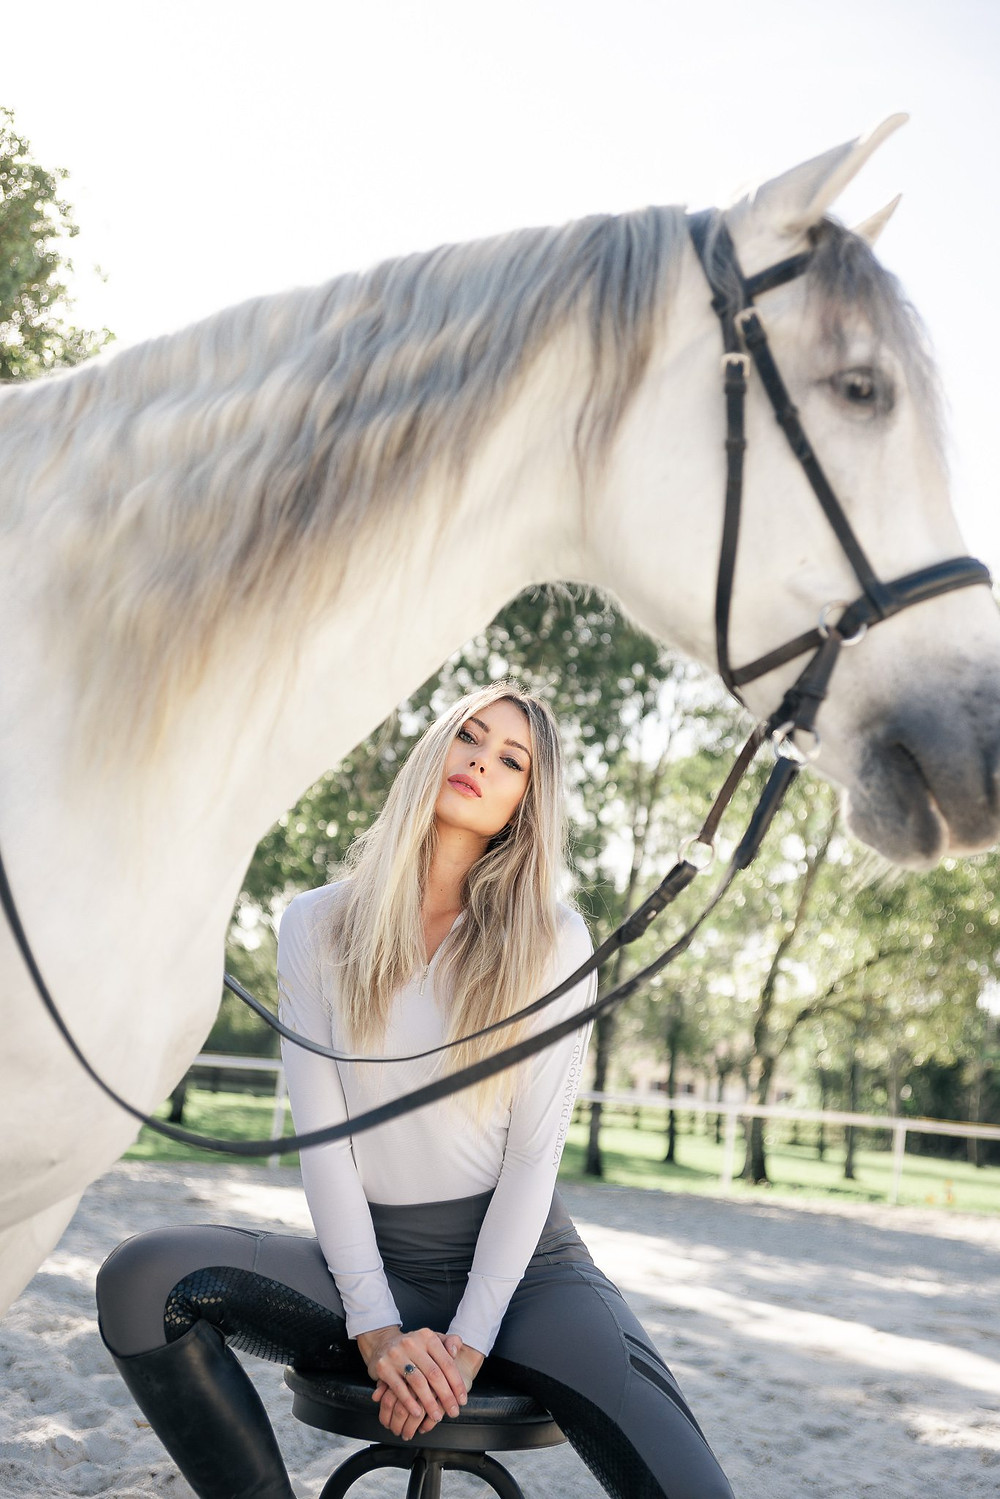 Alina sitting on a stool wearing English riding clothes, next to her horse, Santiago the andalusian in Wellington, Florida